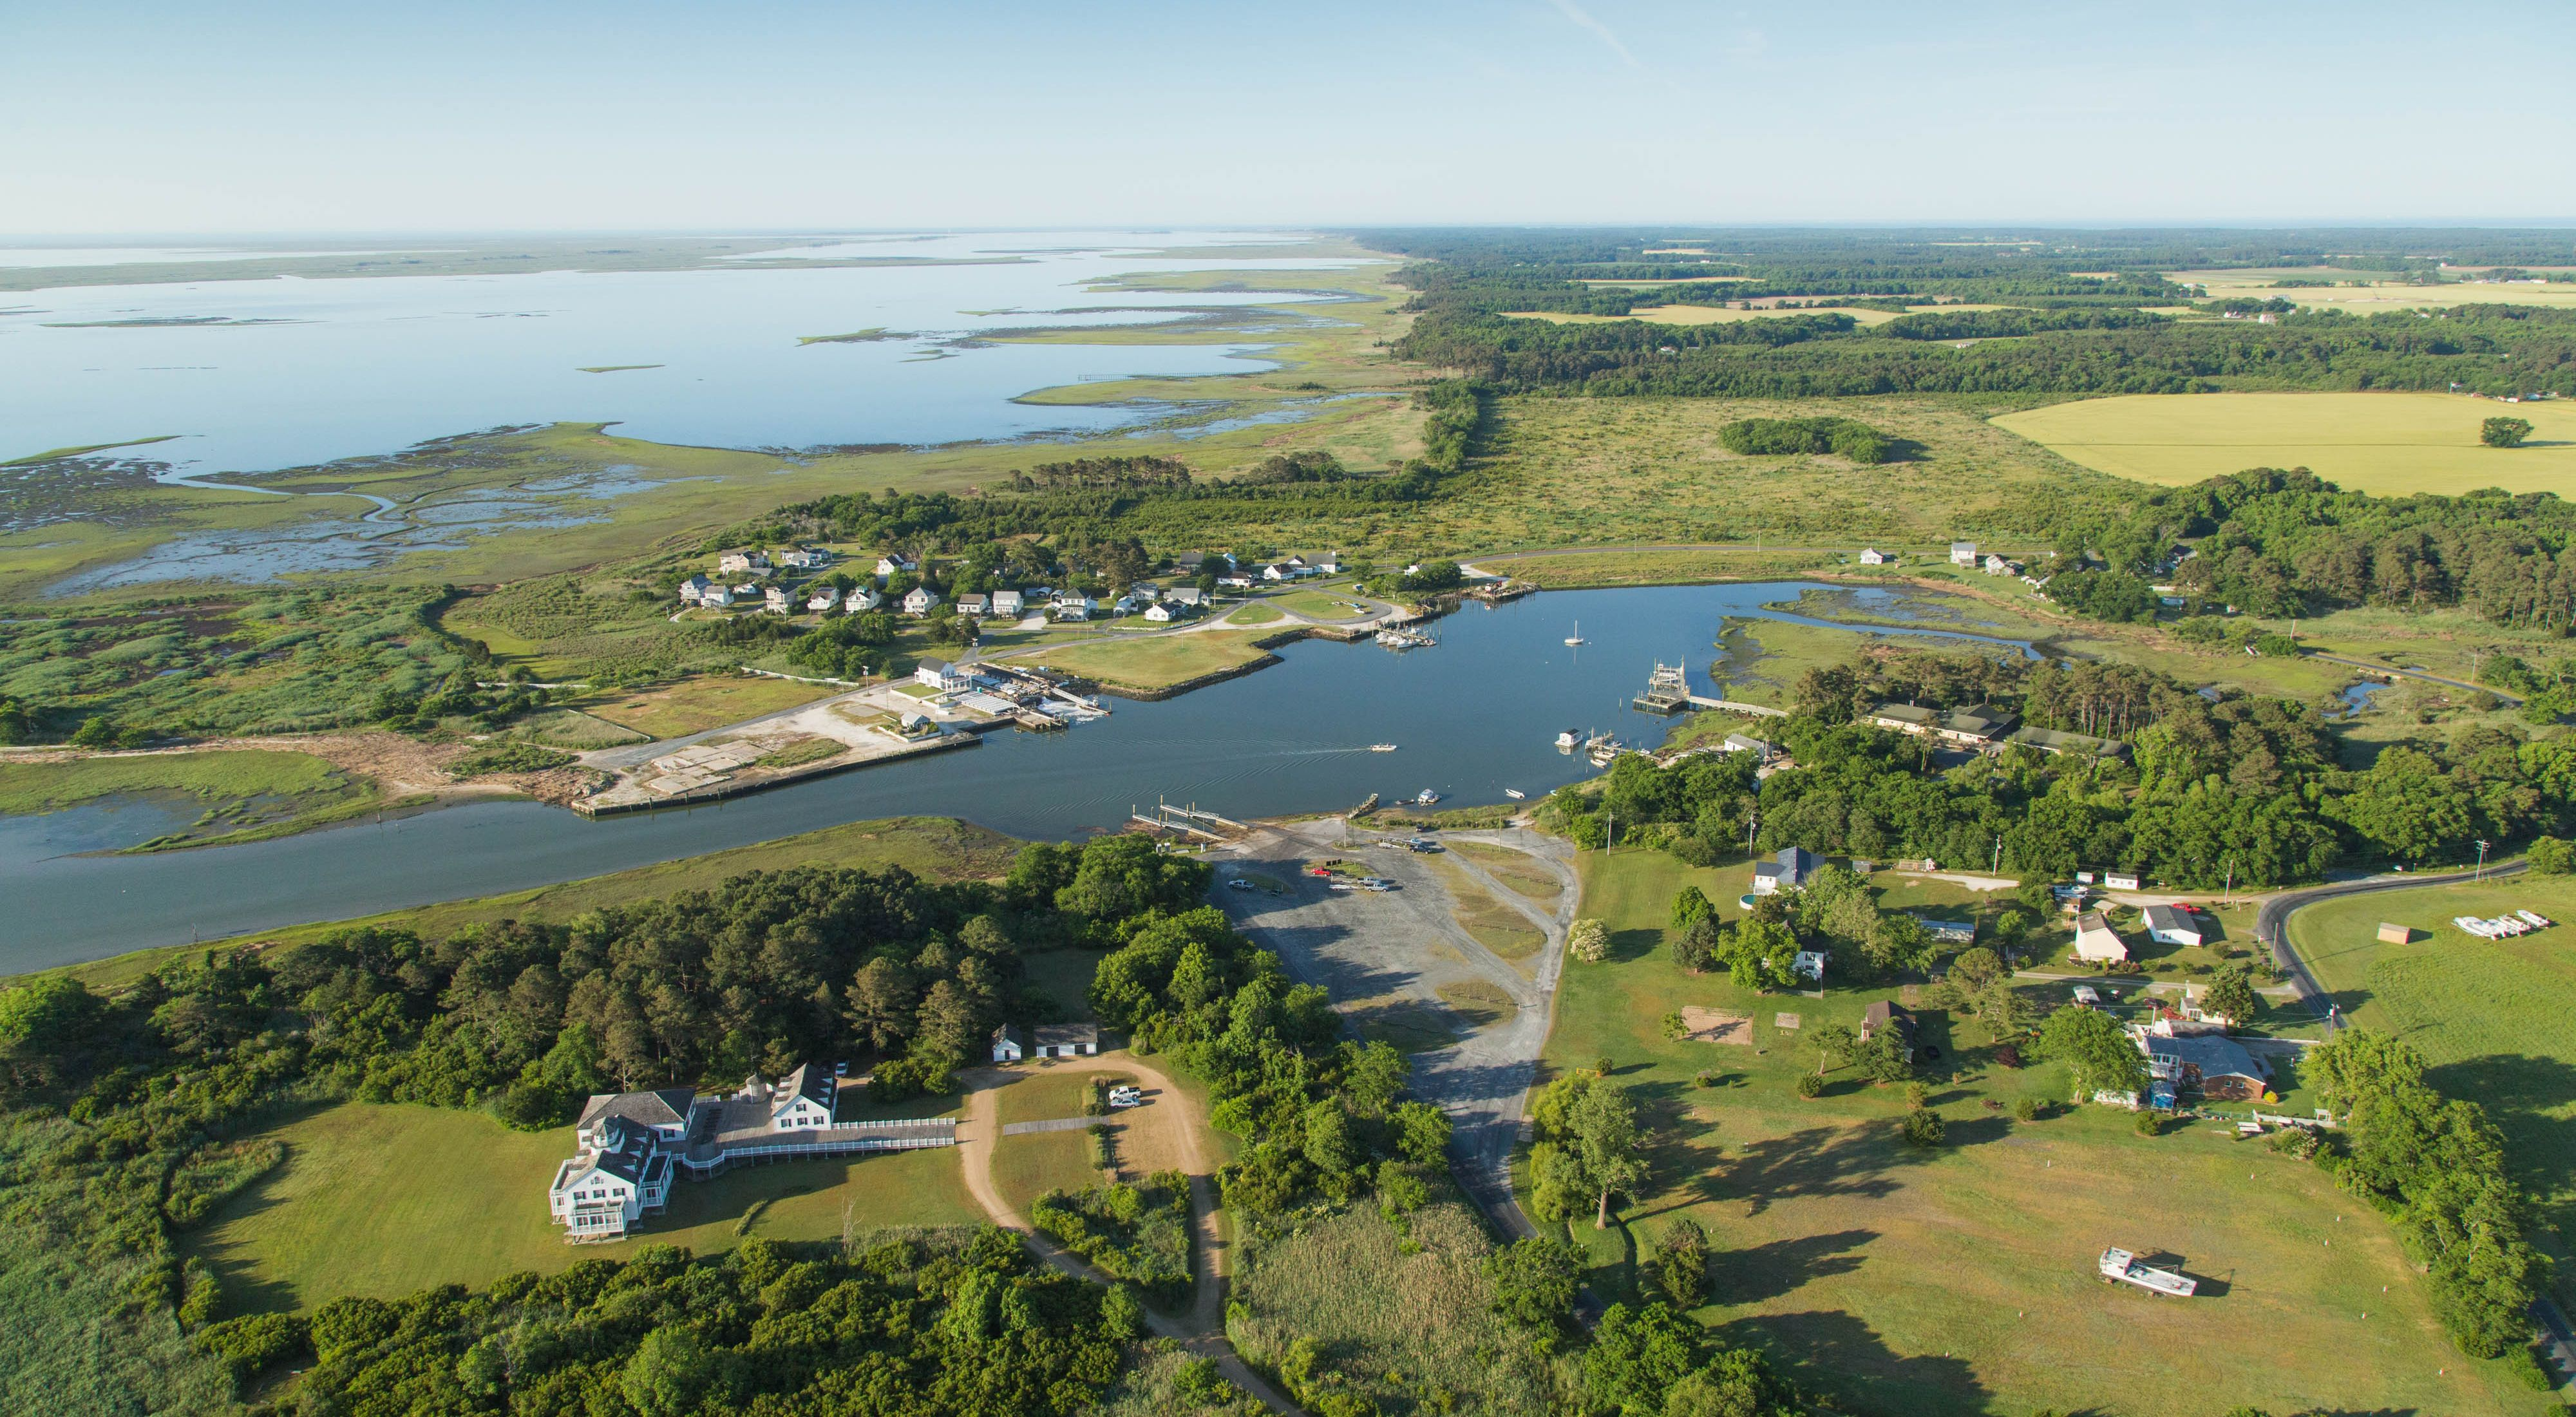 Aerial view as seen during a survey flight of the Virginia Coast Reserve barrier islands.